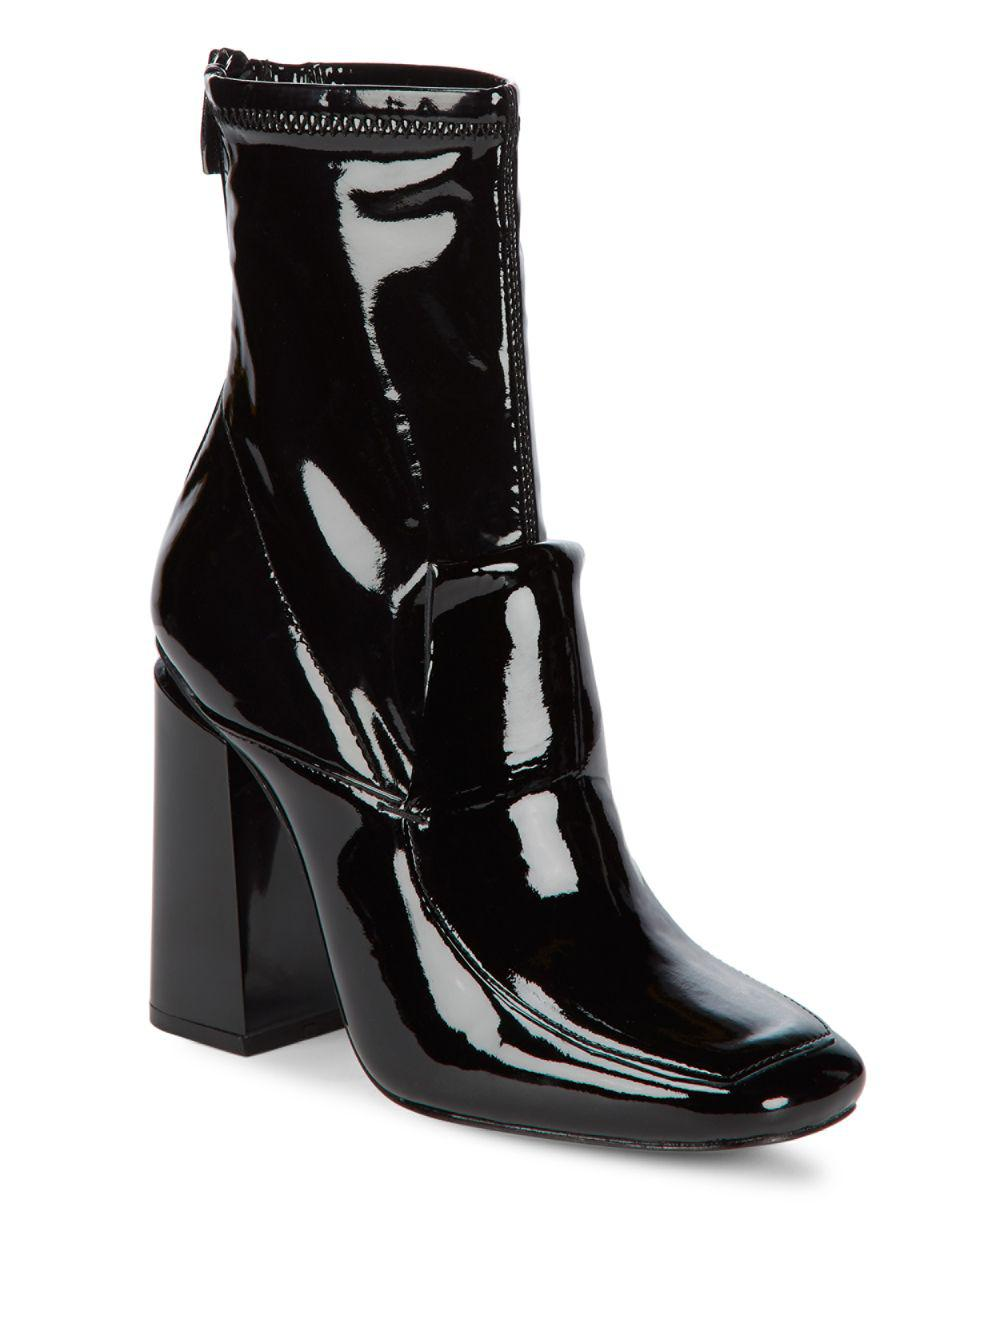 Sigerson Morrison. Women's Black Joanna Patent Leather Sock Boots